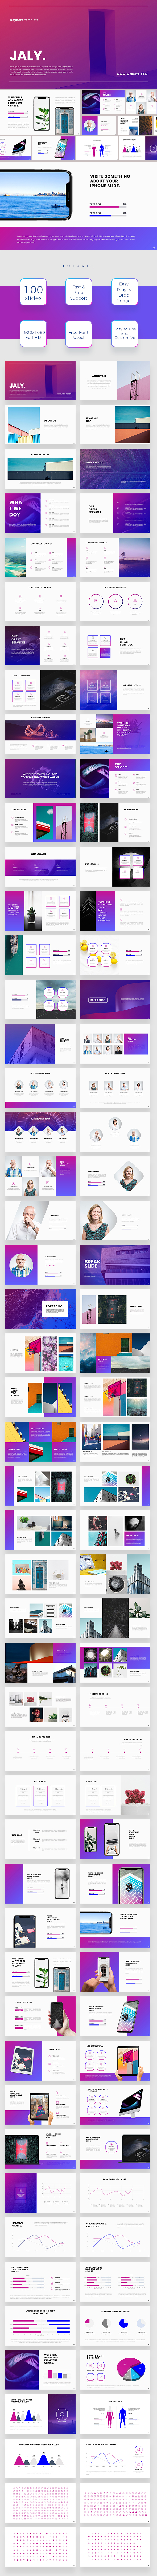 Jaly Keynote Template - Keynote Templates Presentation Templates